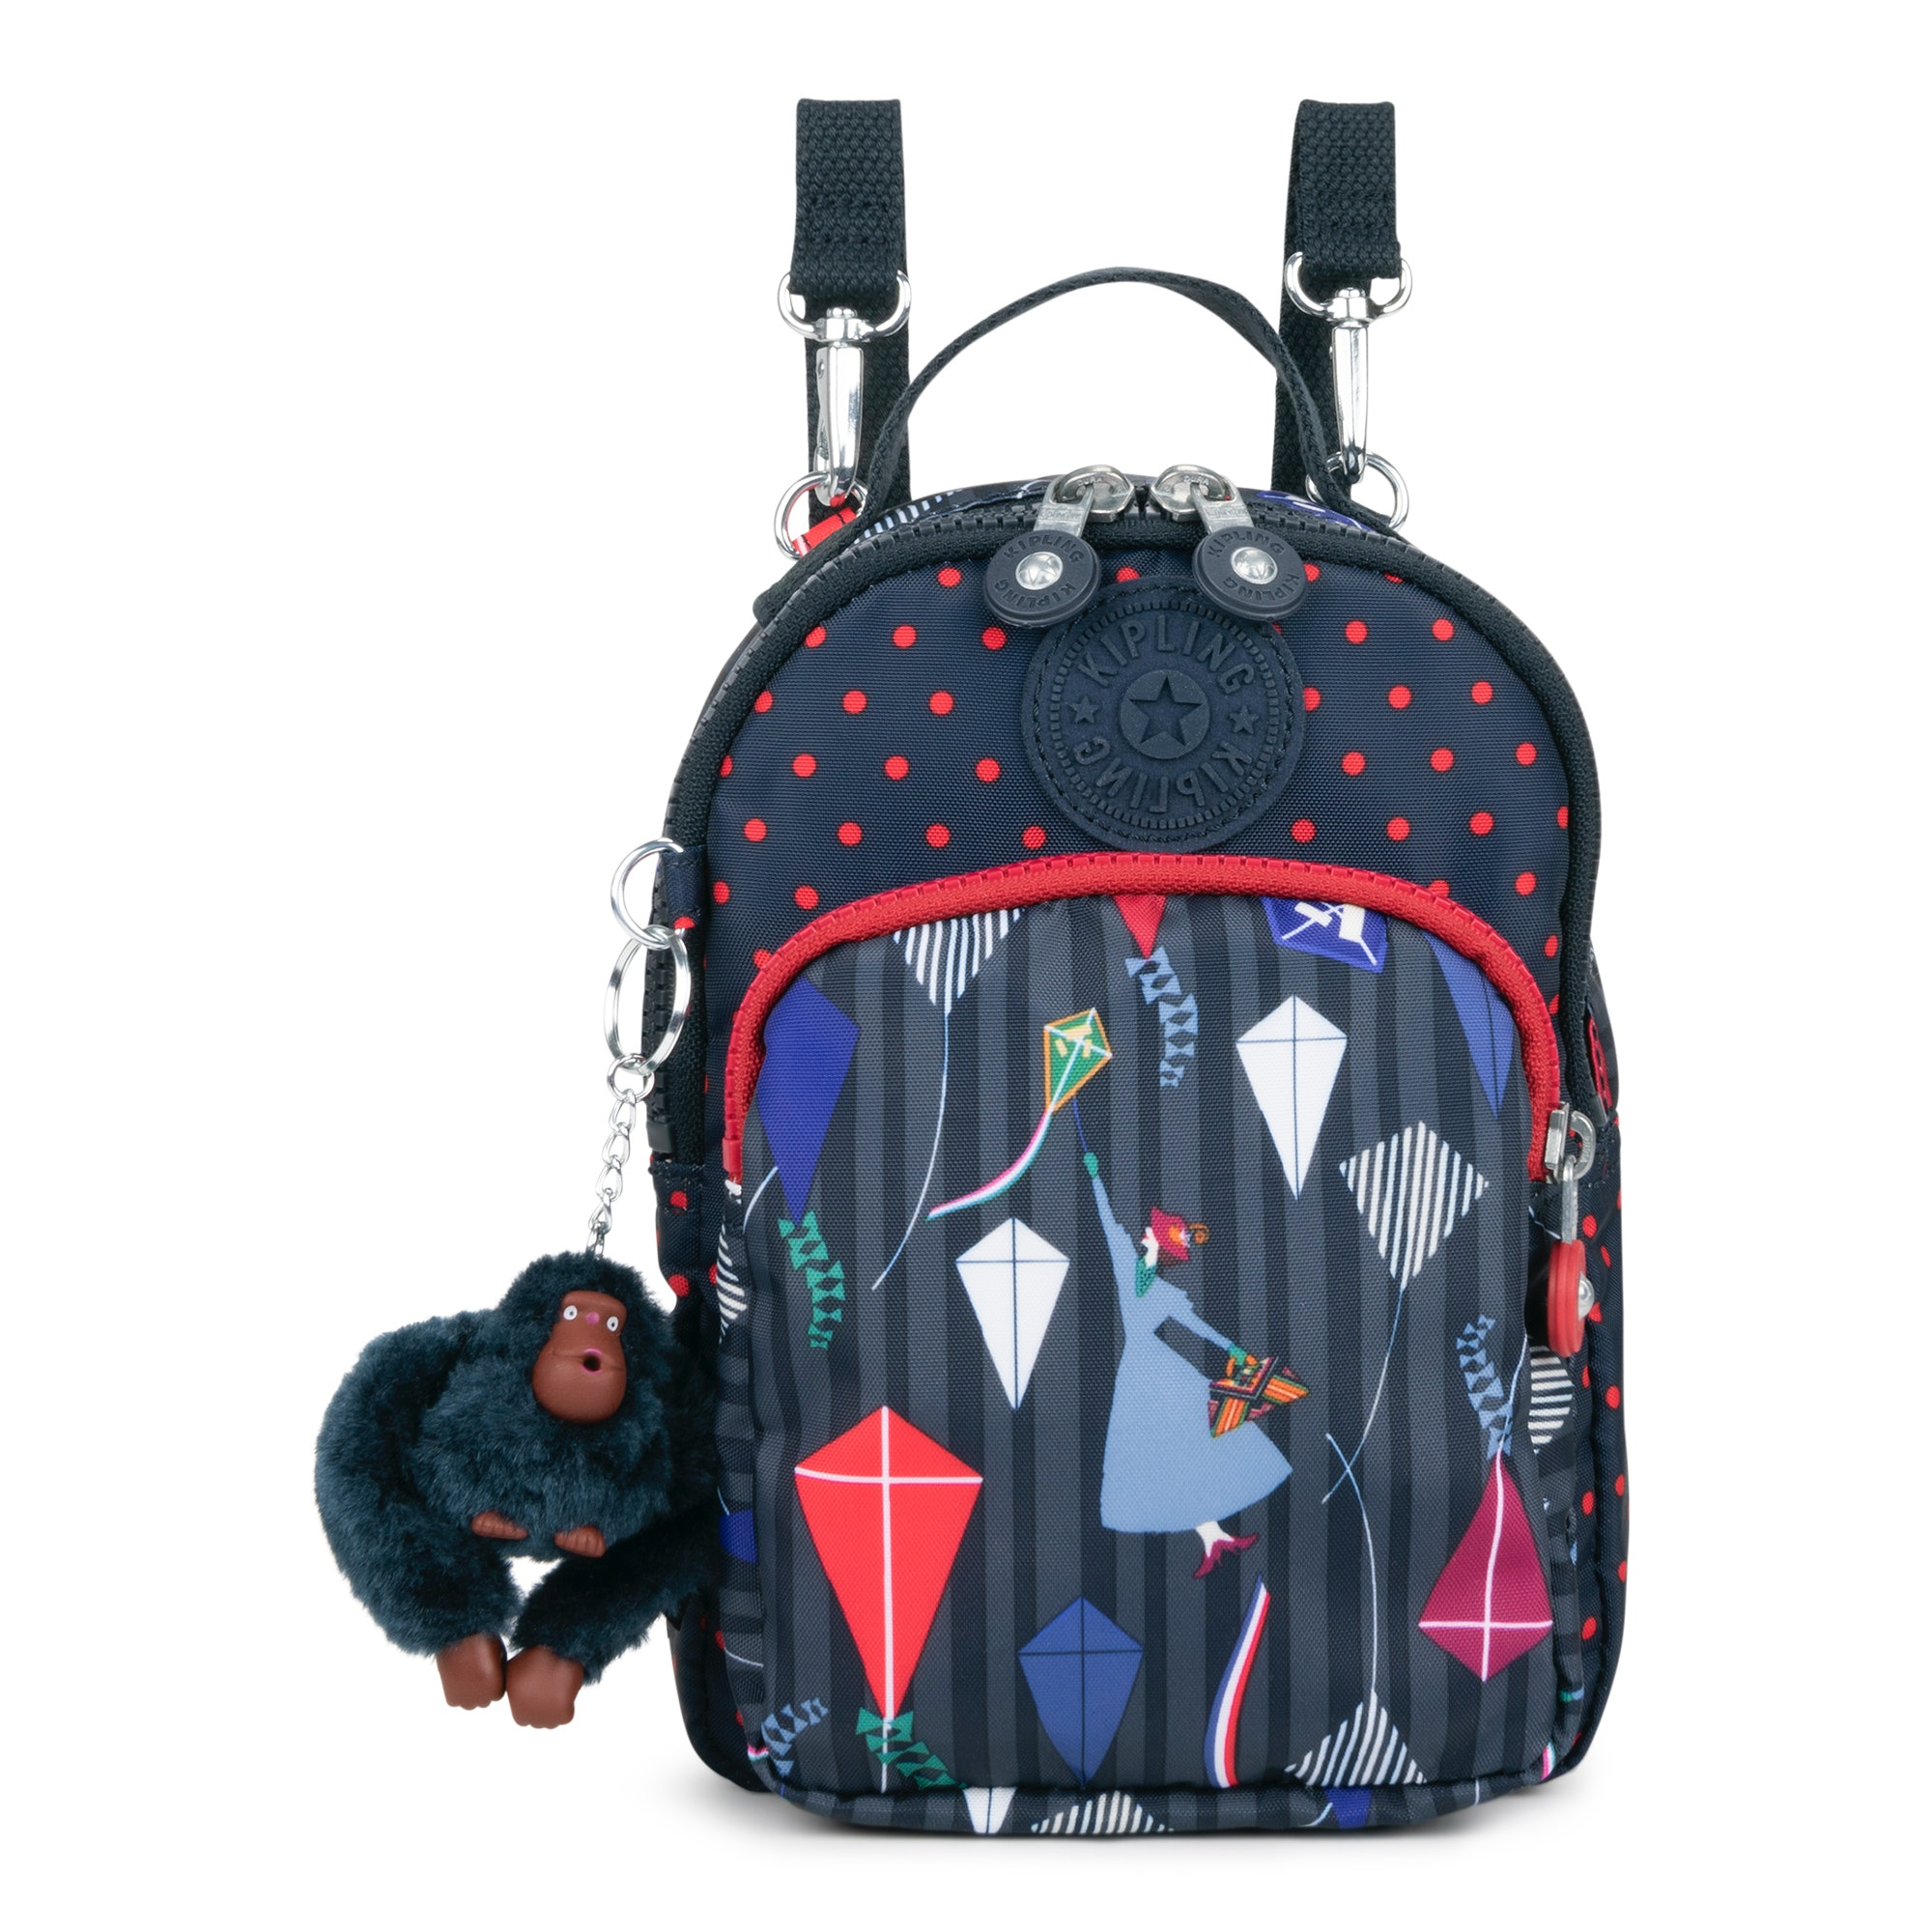 a9bb0c8f3da6 What s In The Kipling x Mary Poppins Collection  These Disney Accessories  Are Supercalifragilisticexpialidocious